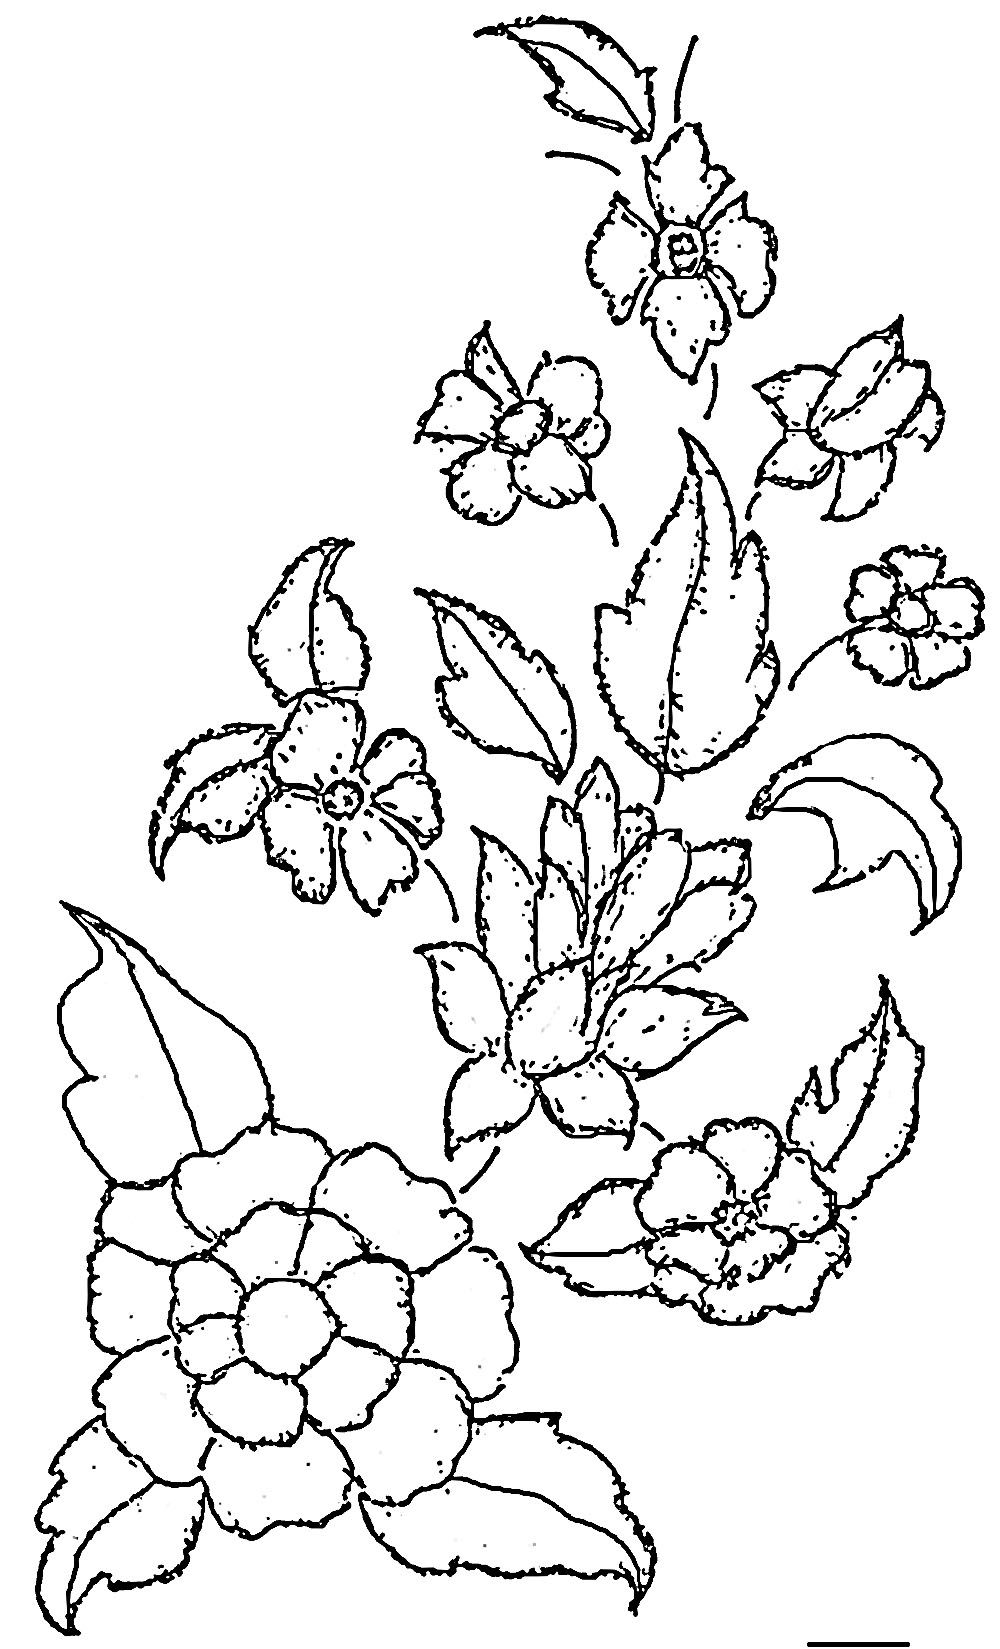 Line Art Aplic Flower Design : Free printable designs glass painting patterns pattern